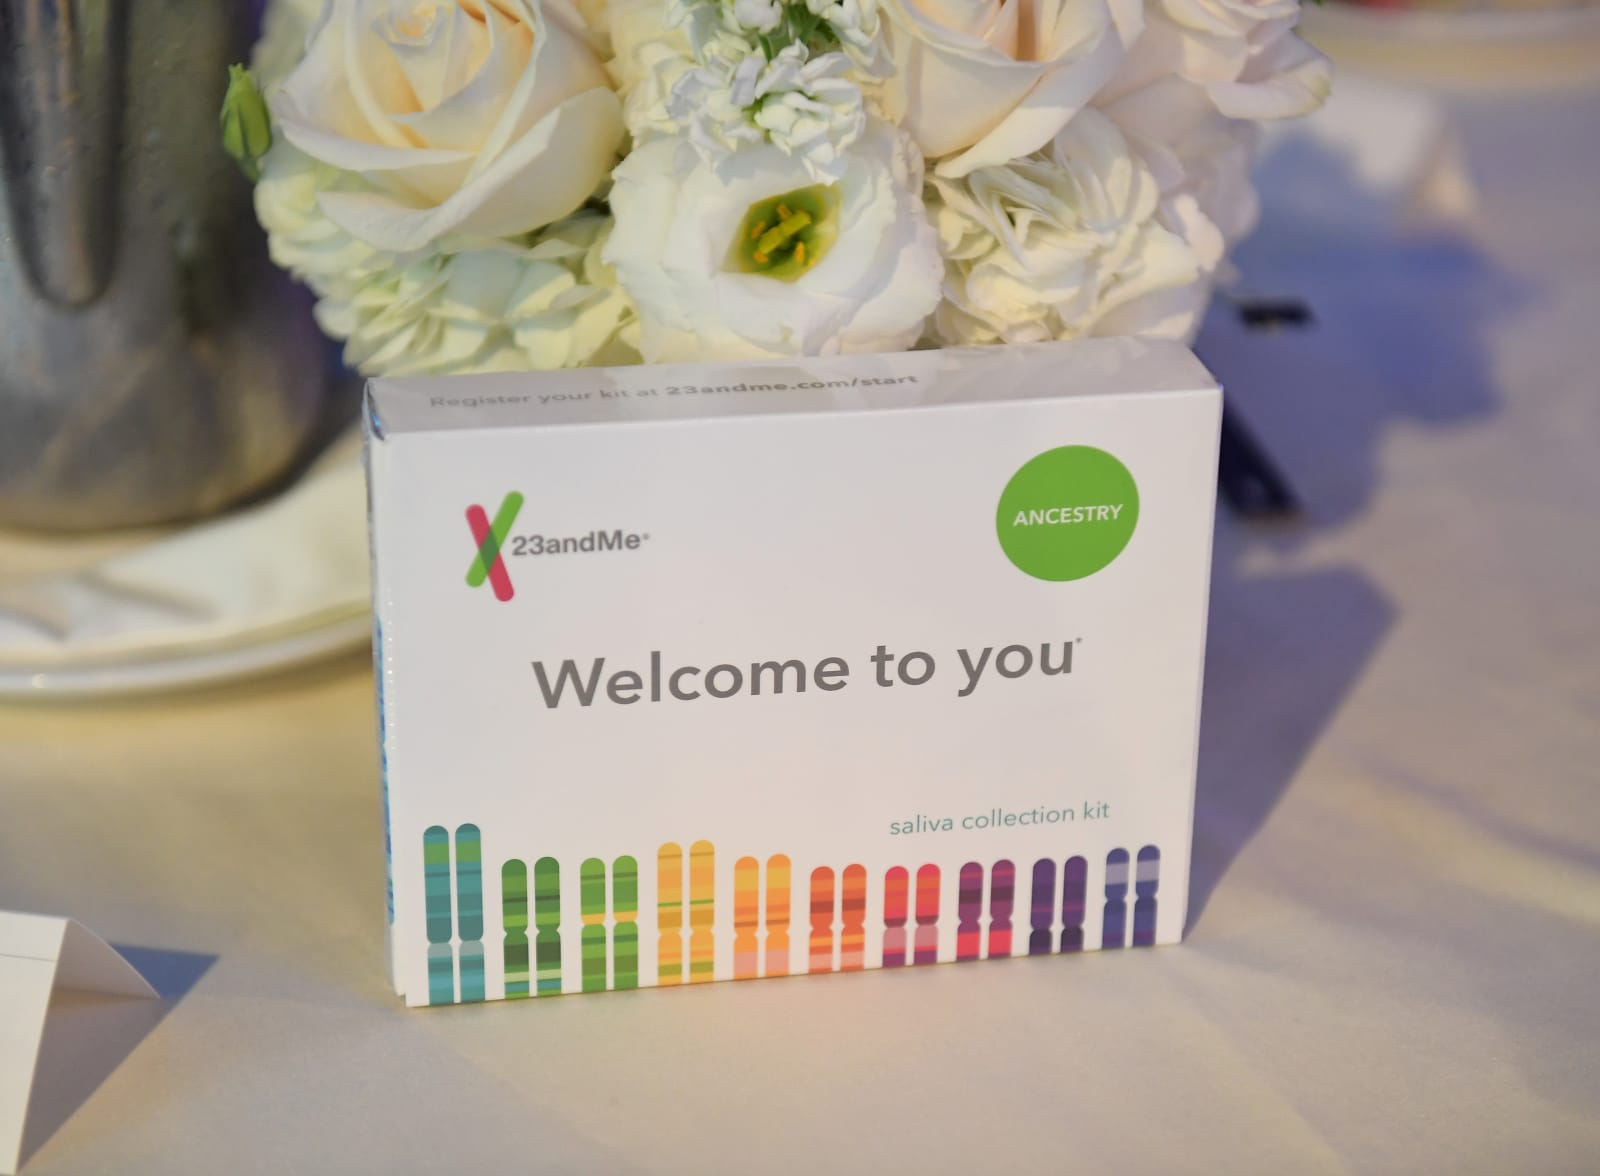 23andMe, Ancestry and others agree to genetic privacy guidelines